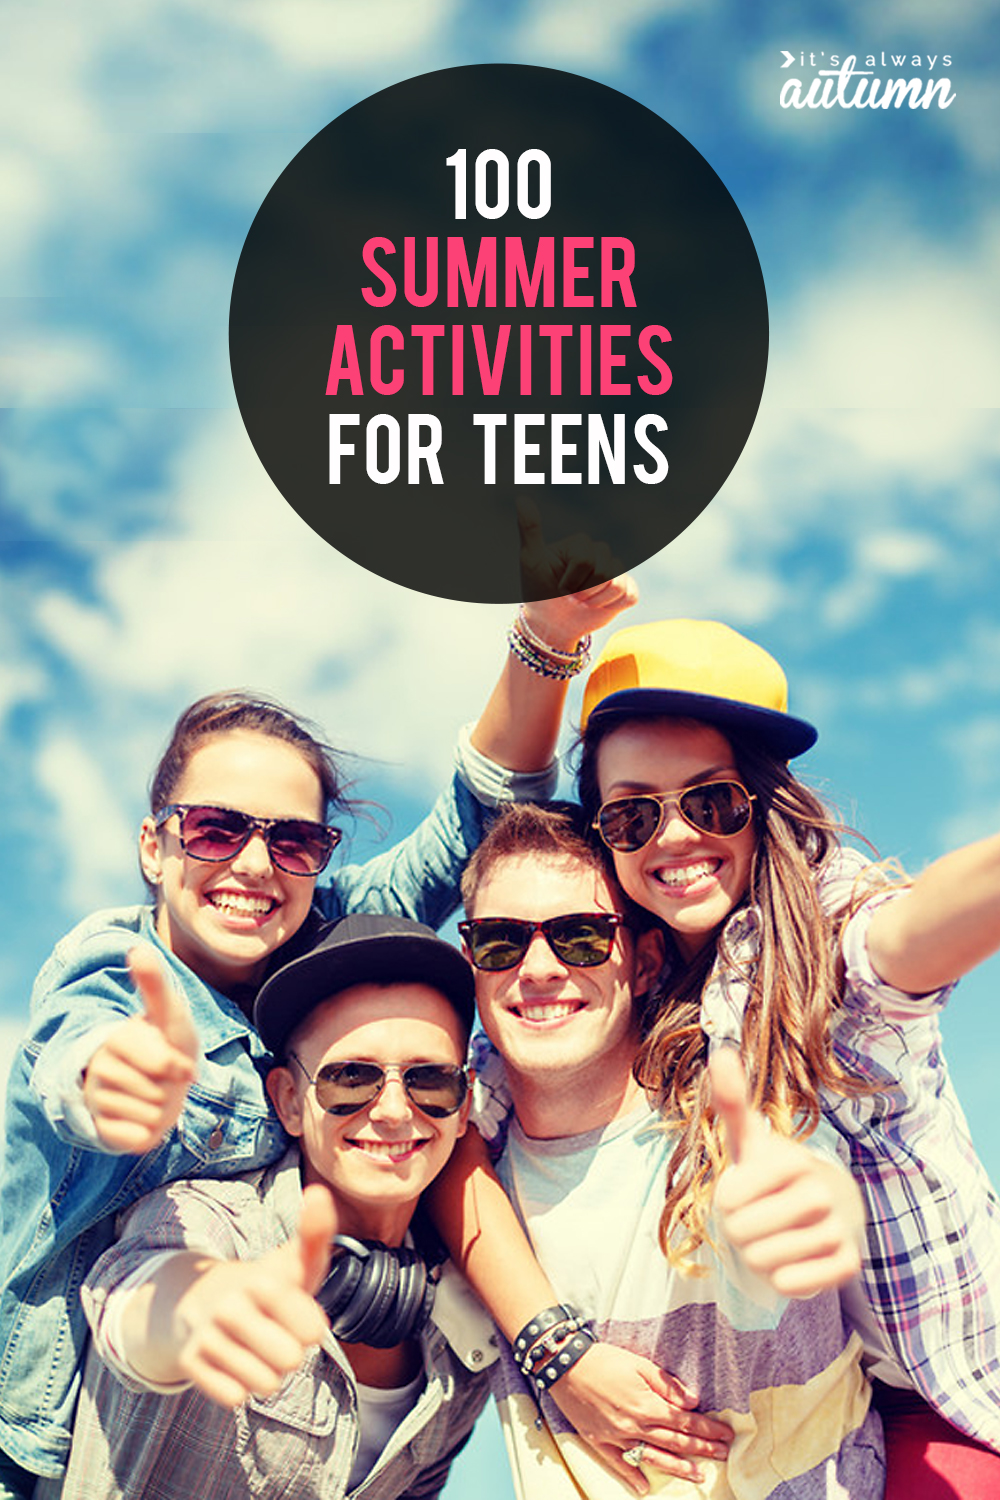 fun-free-things-for-teens-mobile-sex